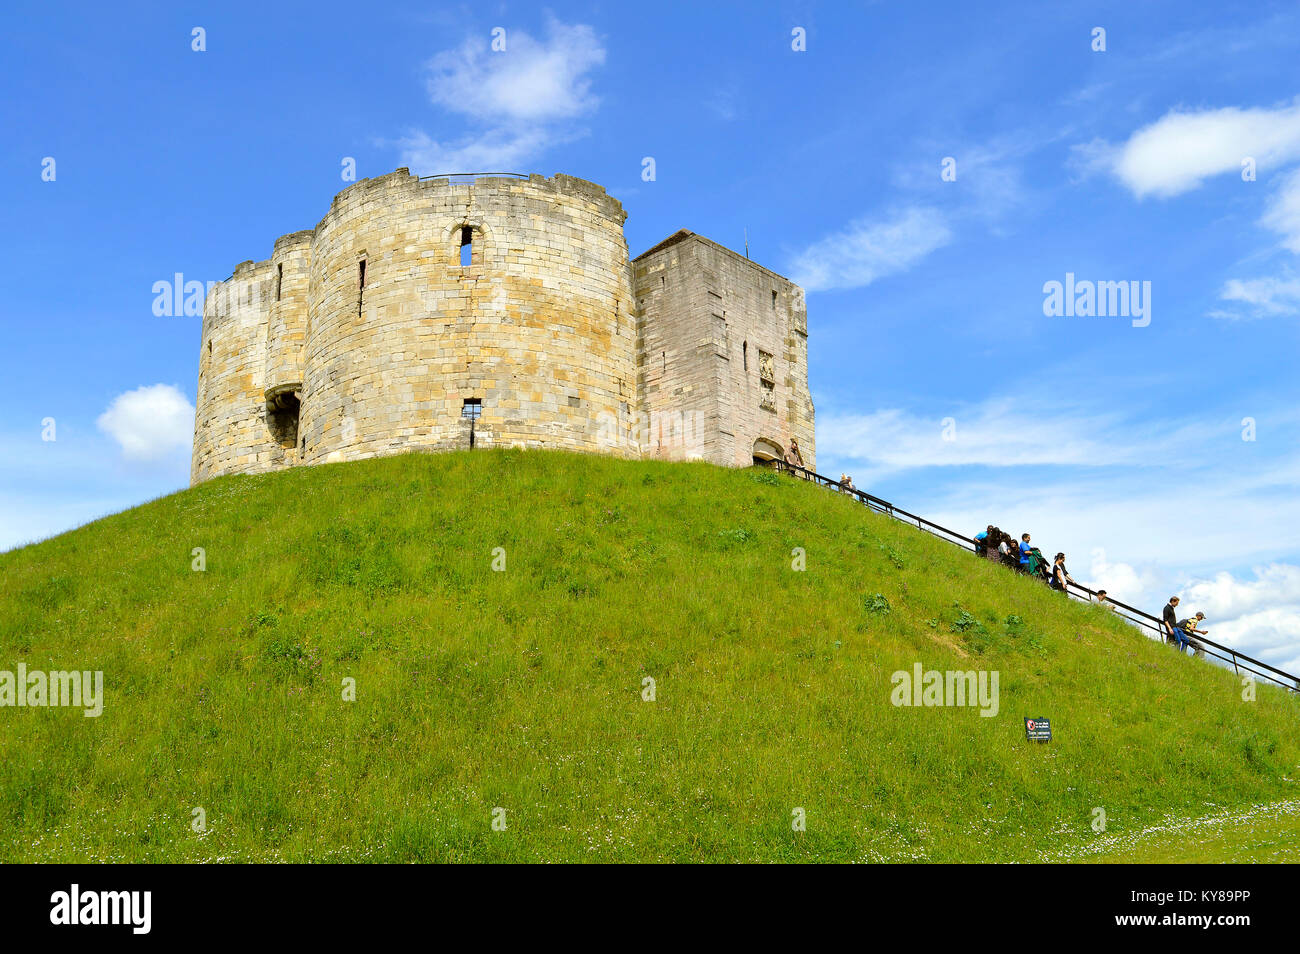 The historical York Castle in the city of York commonly referred to as Clifford's Tower - Stock Image